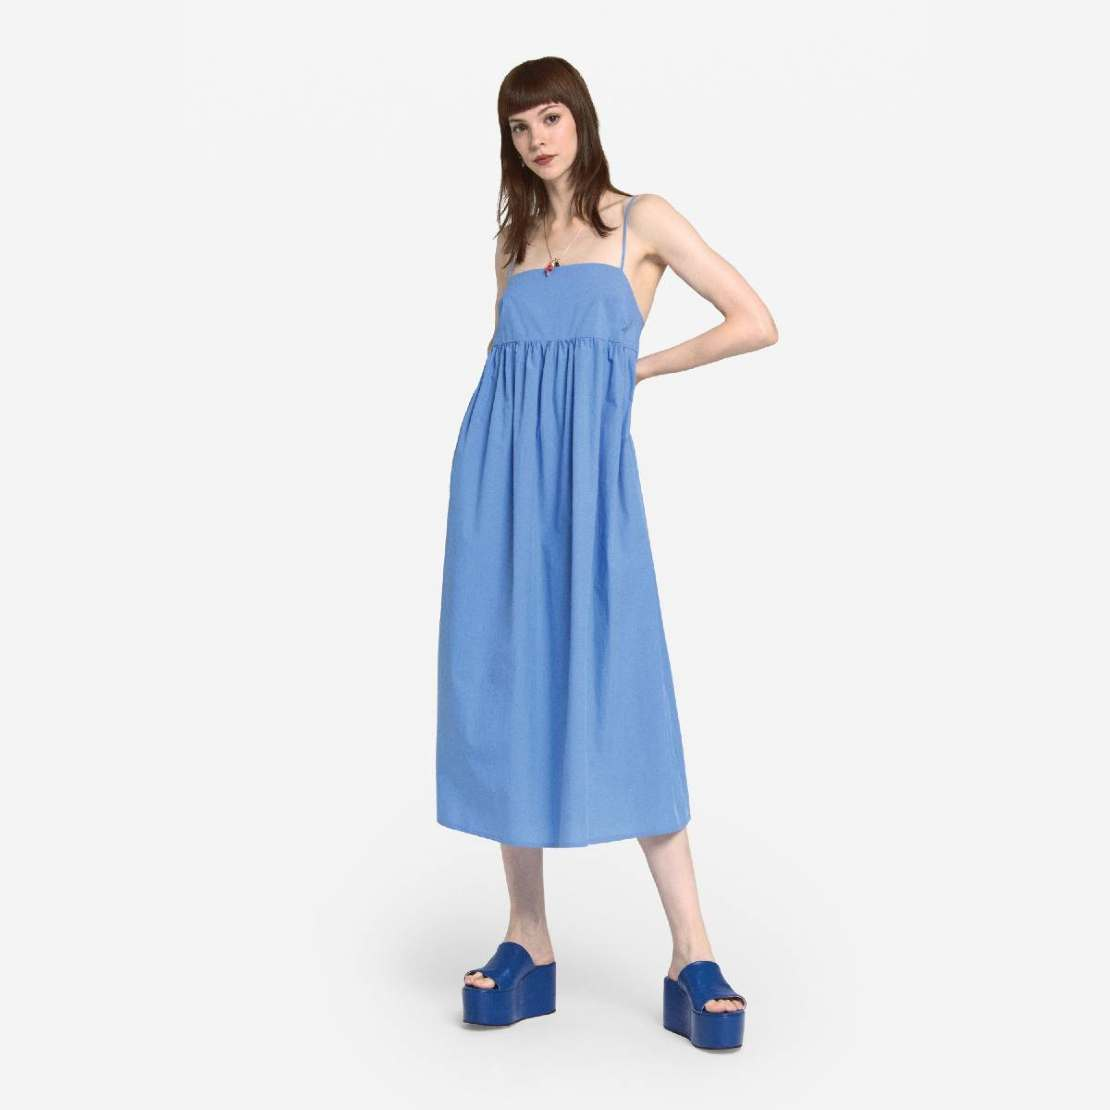 The perfect Ottod'ame Beach dress is perfect staycation wear